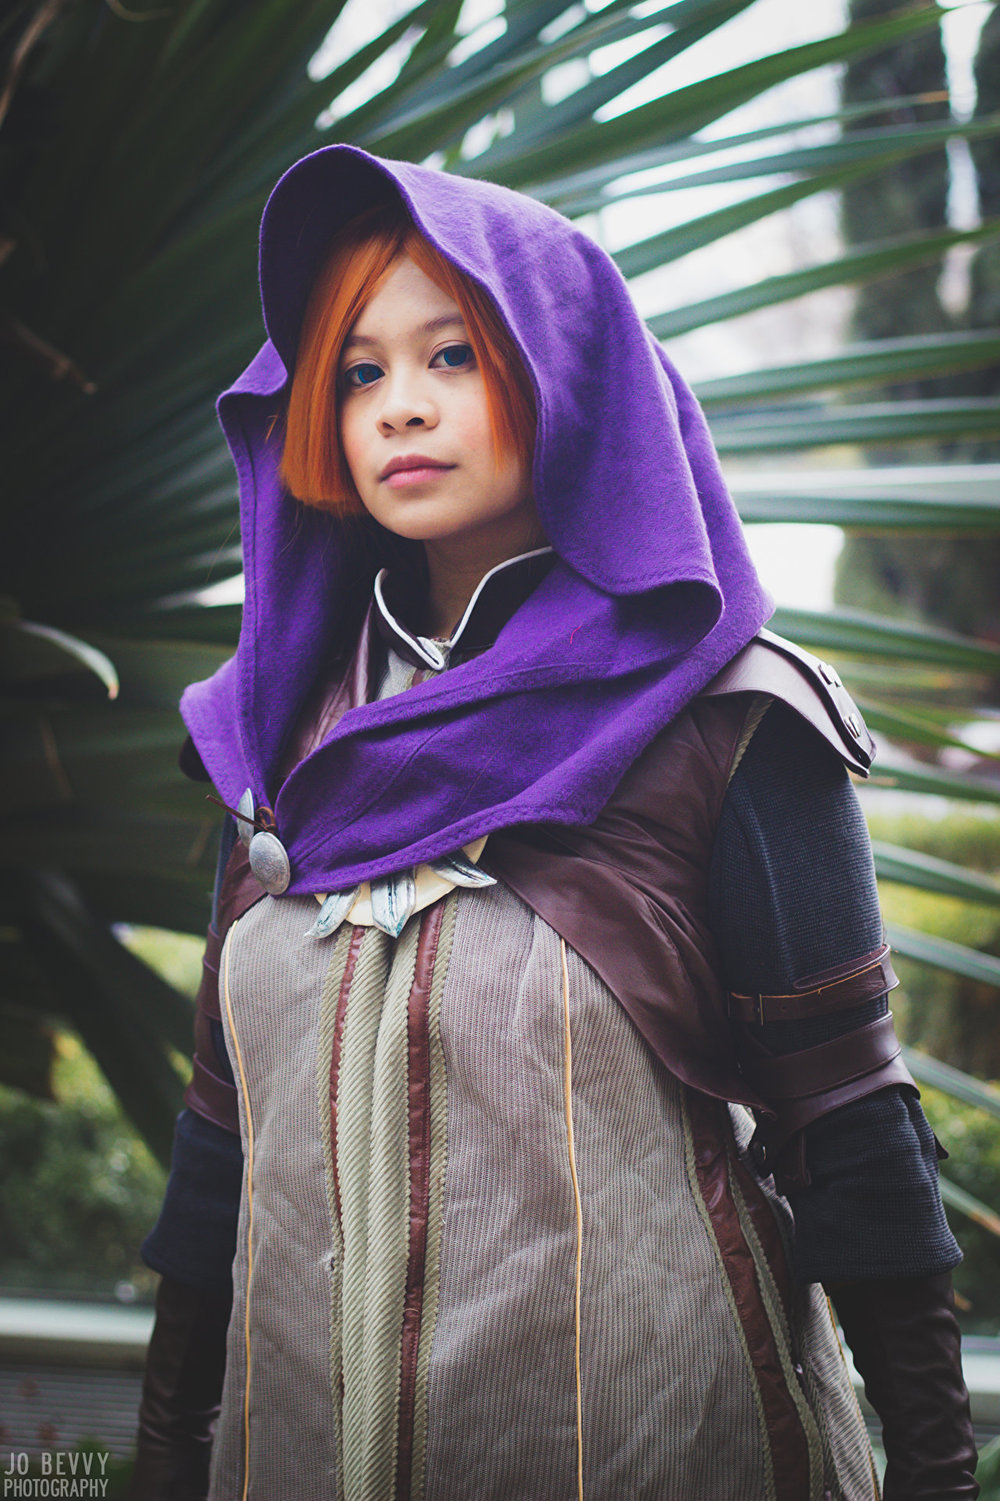 Leliana (Dragon Age: Inquisition) photo: JoBevvy